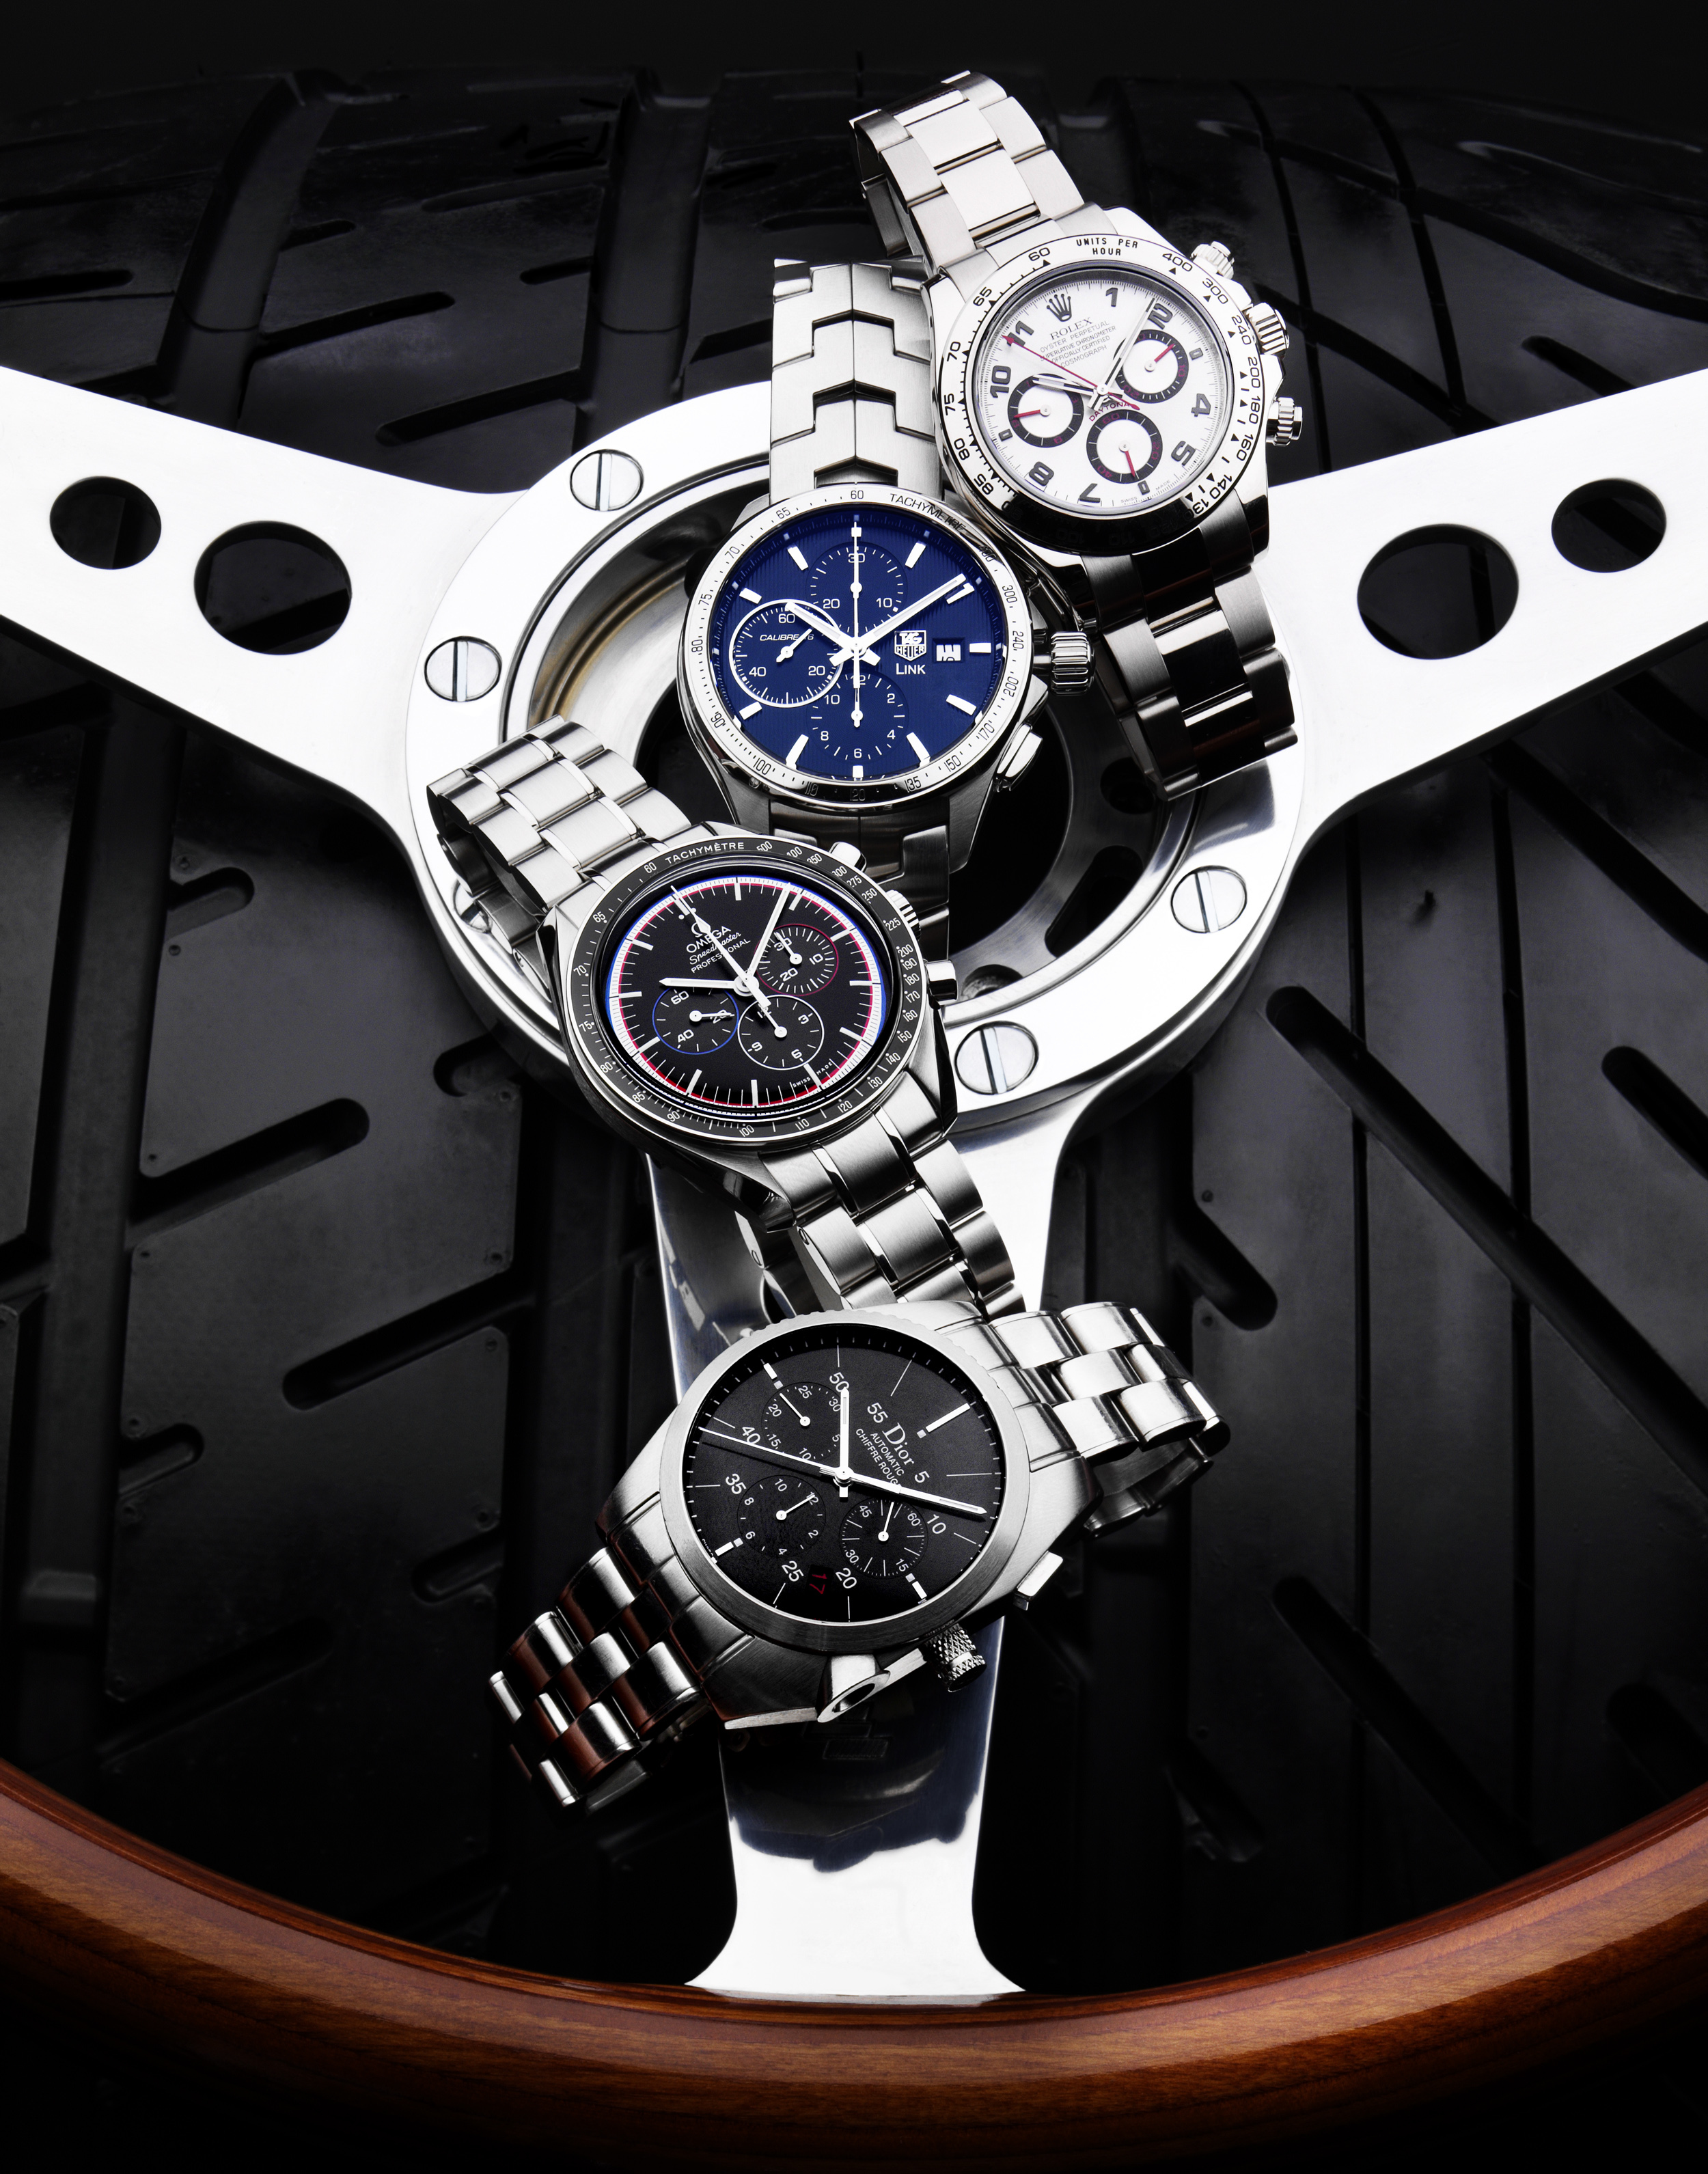 watches_002_R.jpg